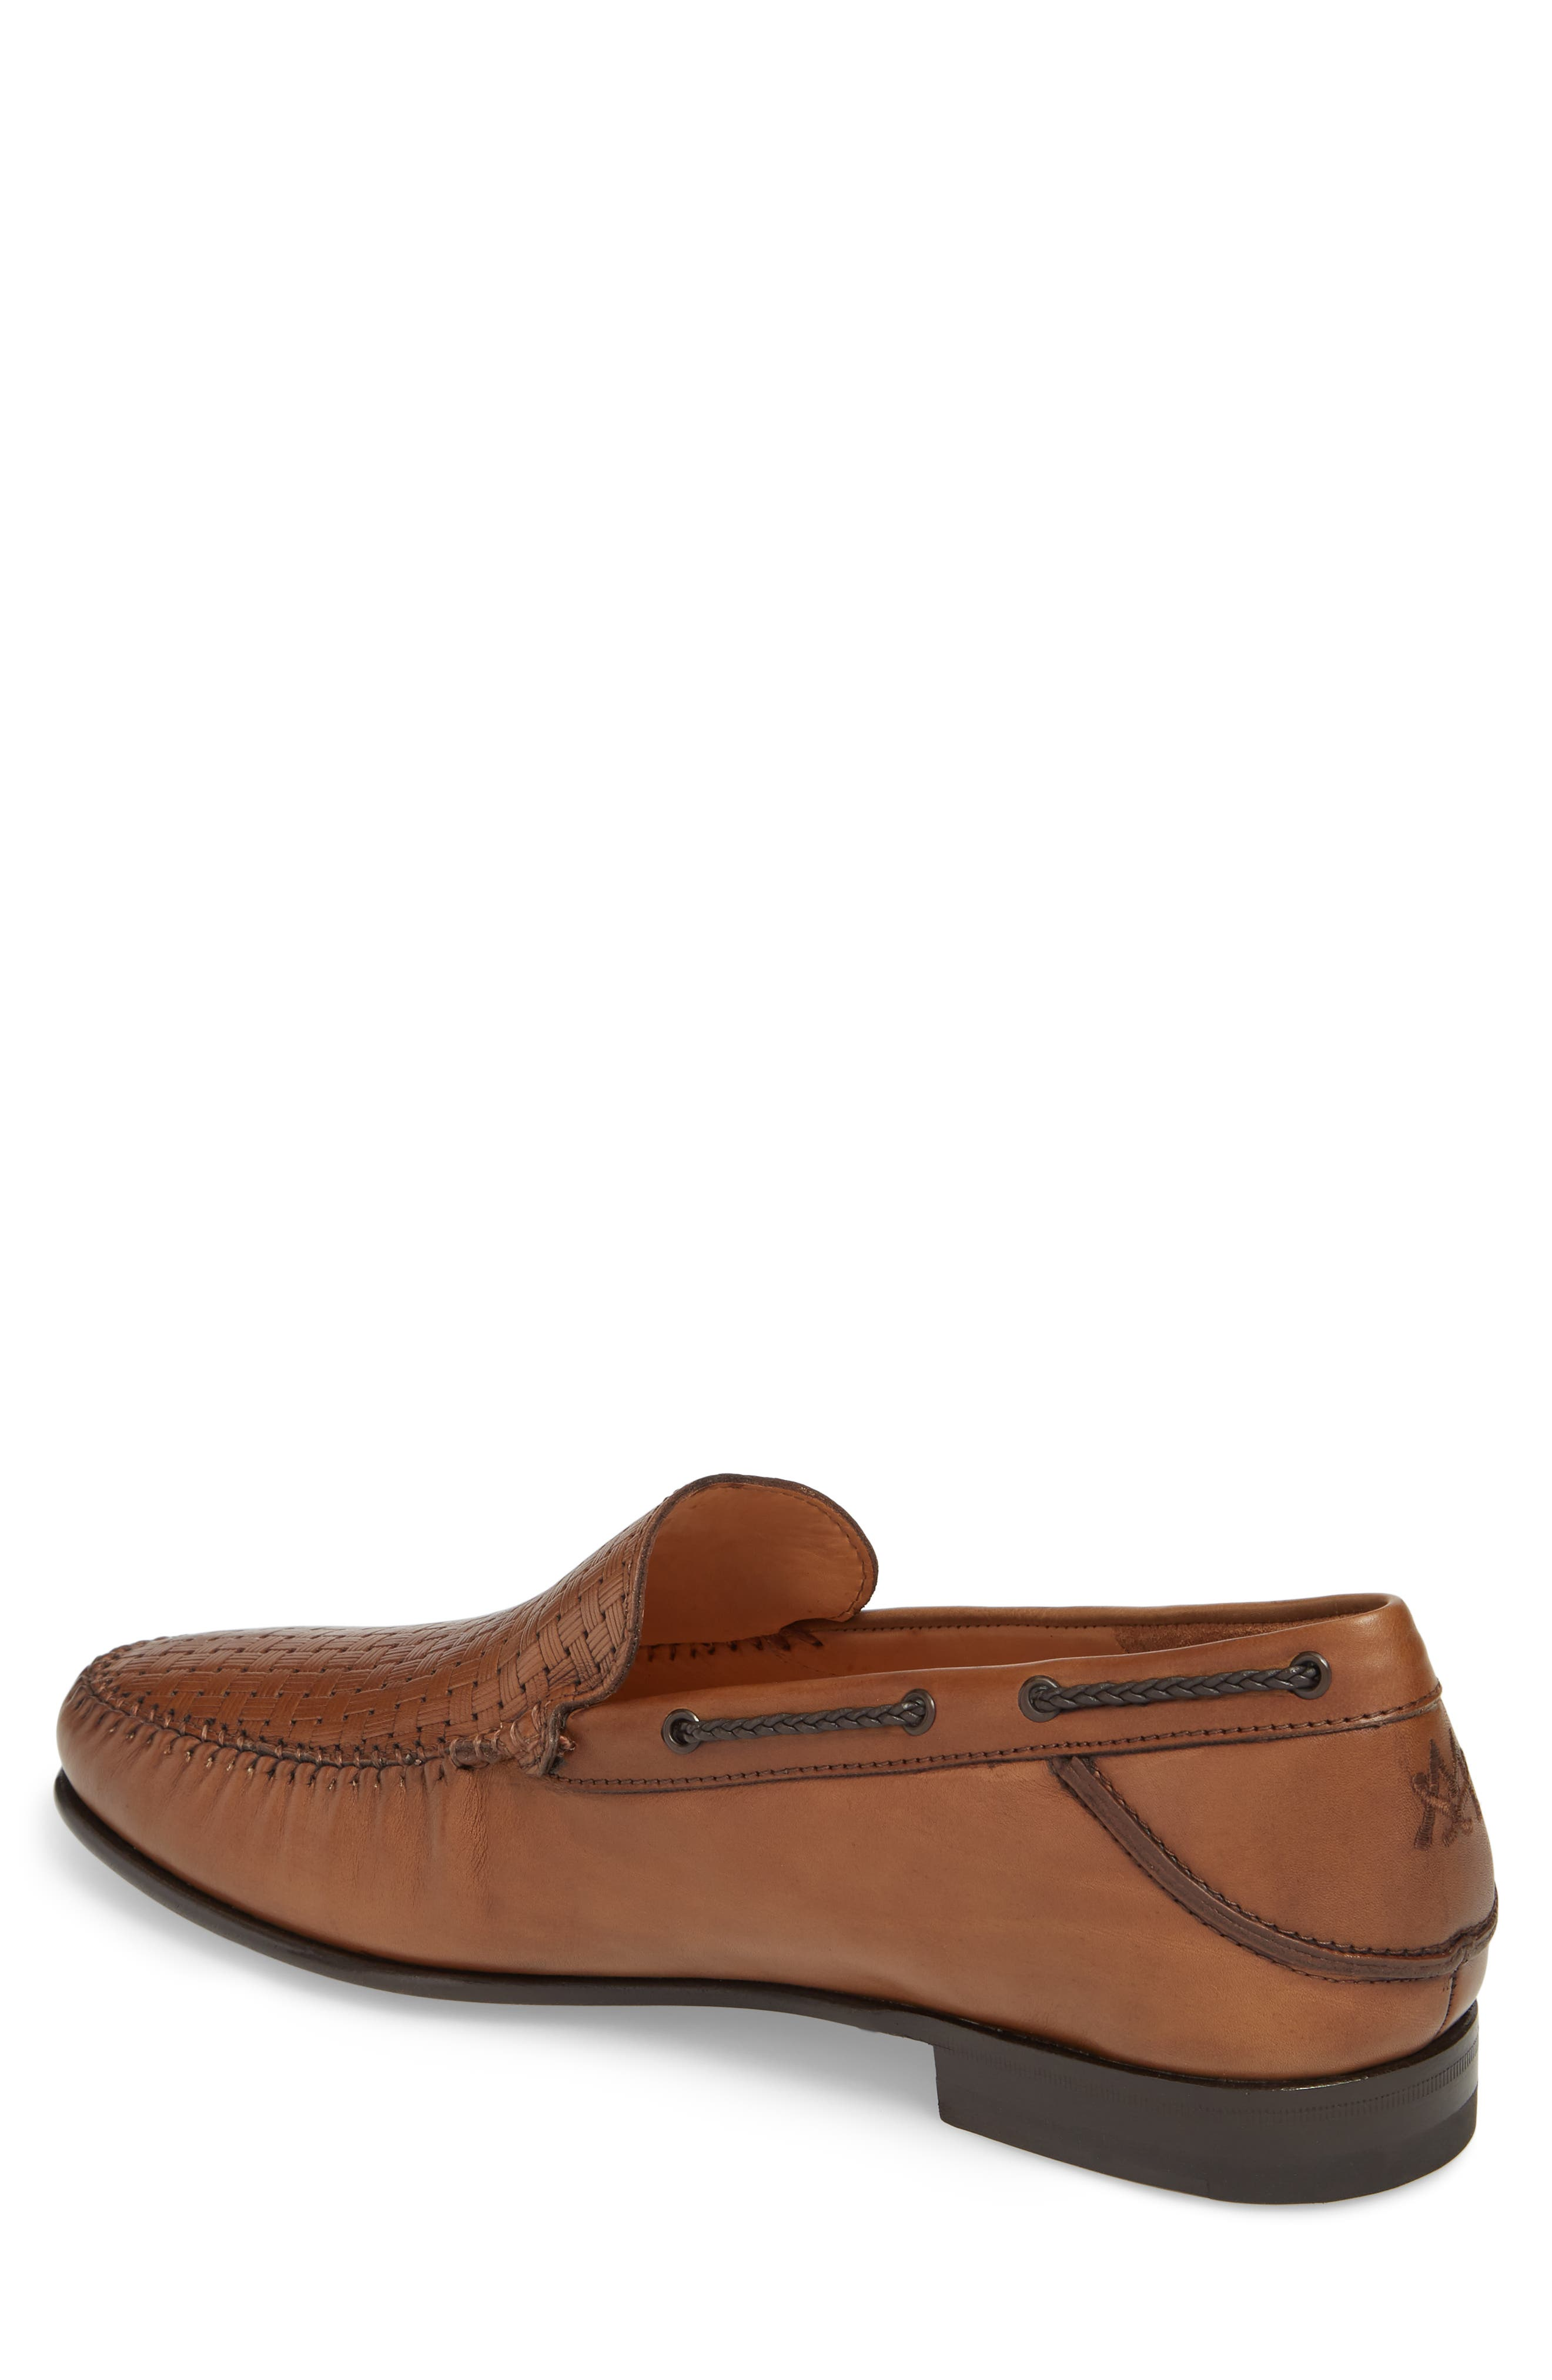 Jano Embossed Moc-Toe Loafer,                             Alternate thumbnail 2, color,                             Cognac Leather